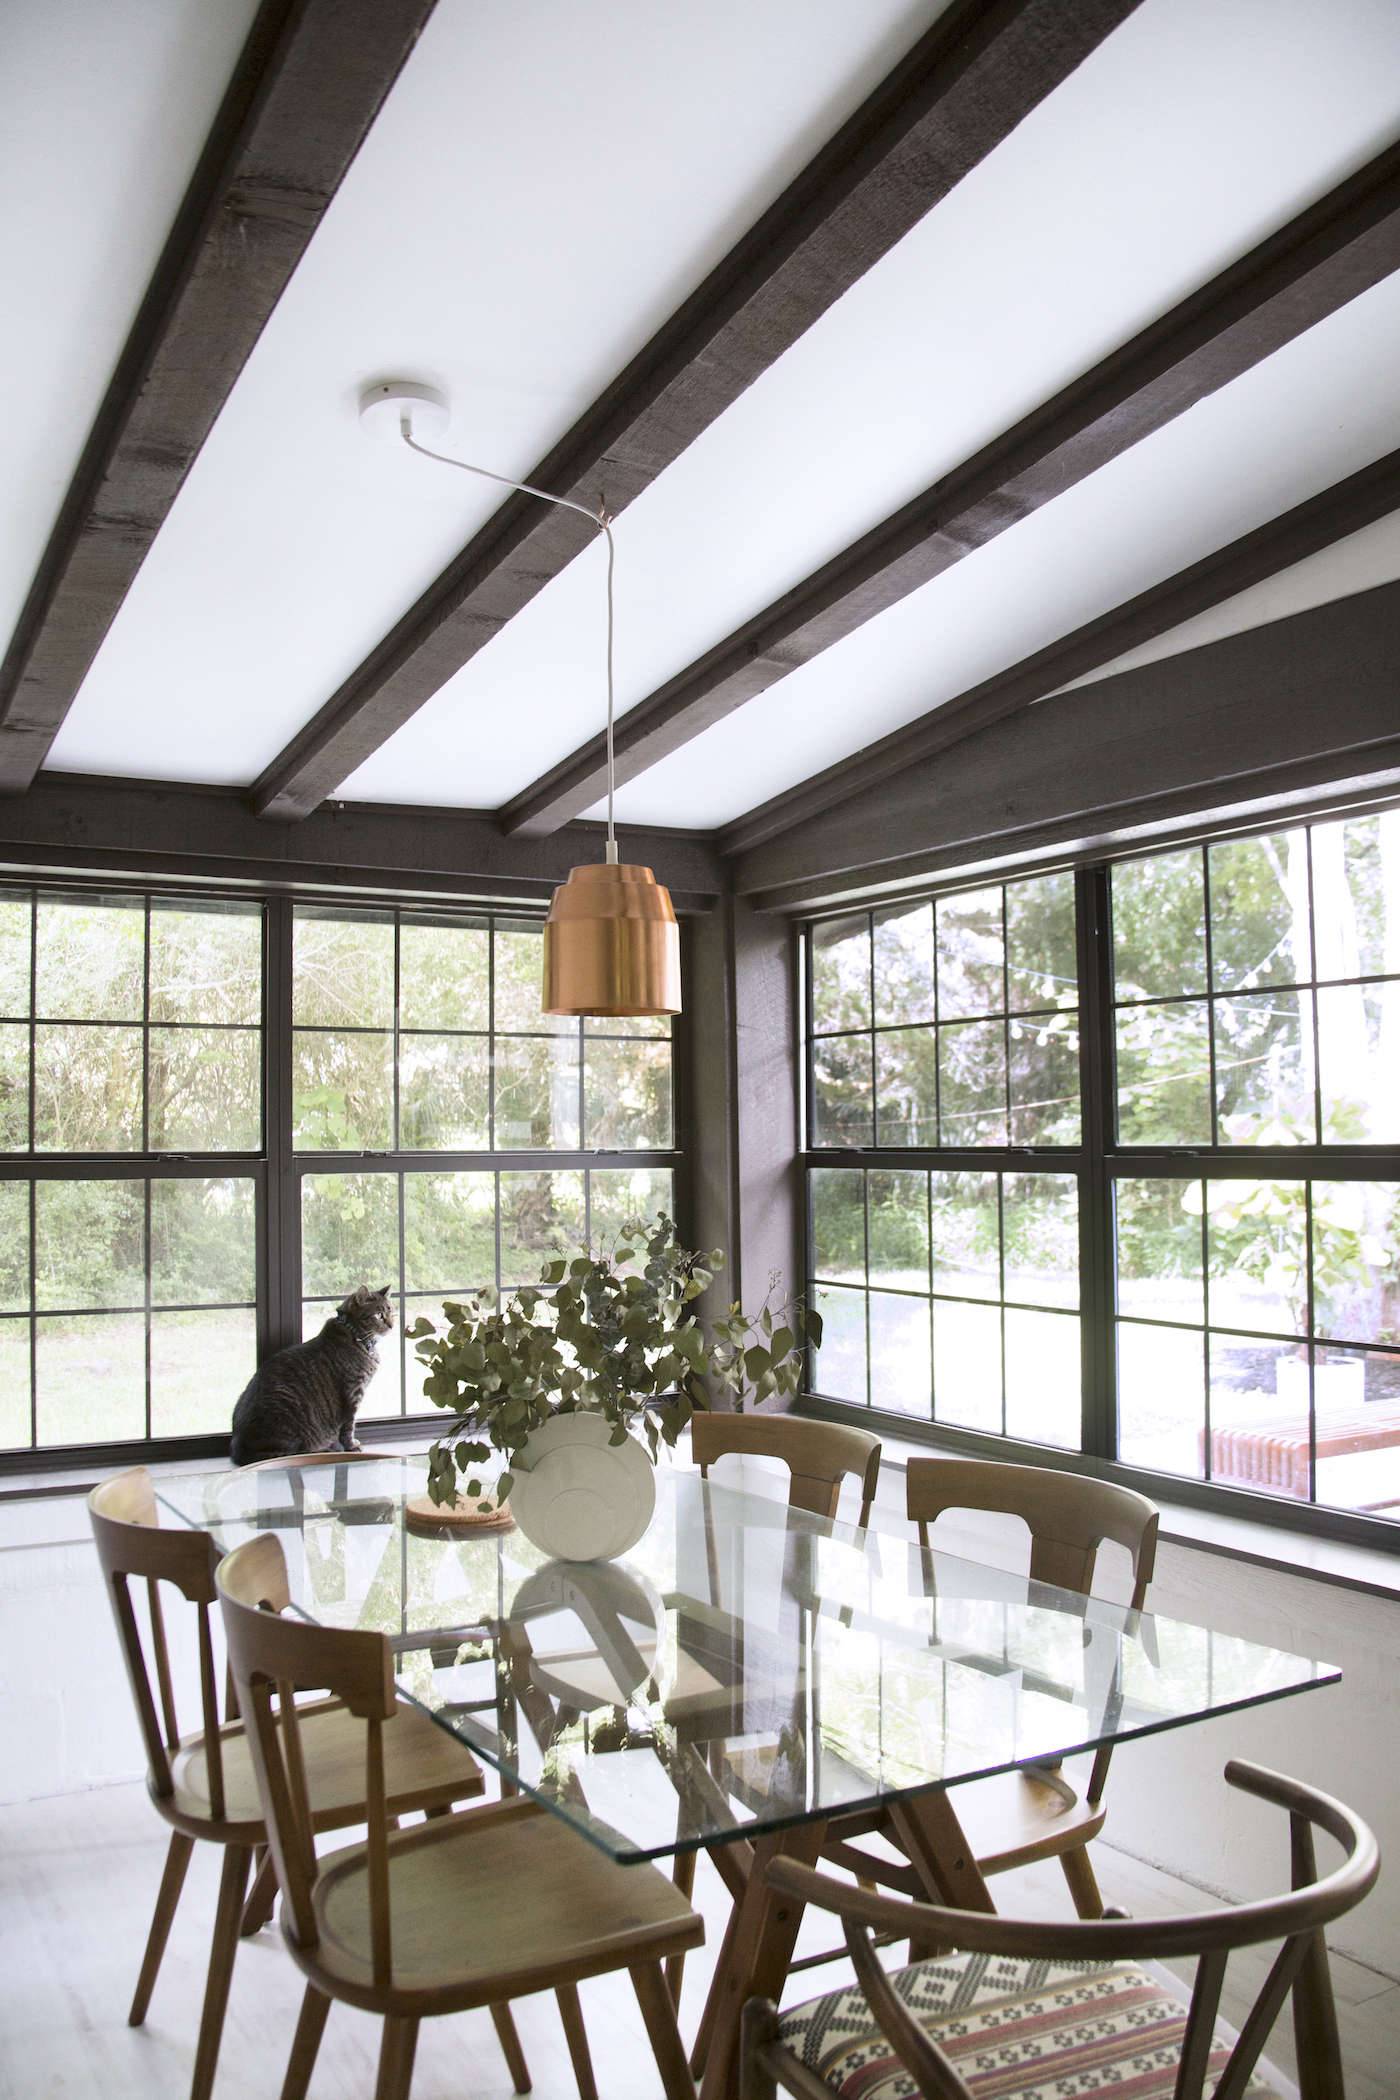 glass-rectangular-dining-room-table-beams-ceiling